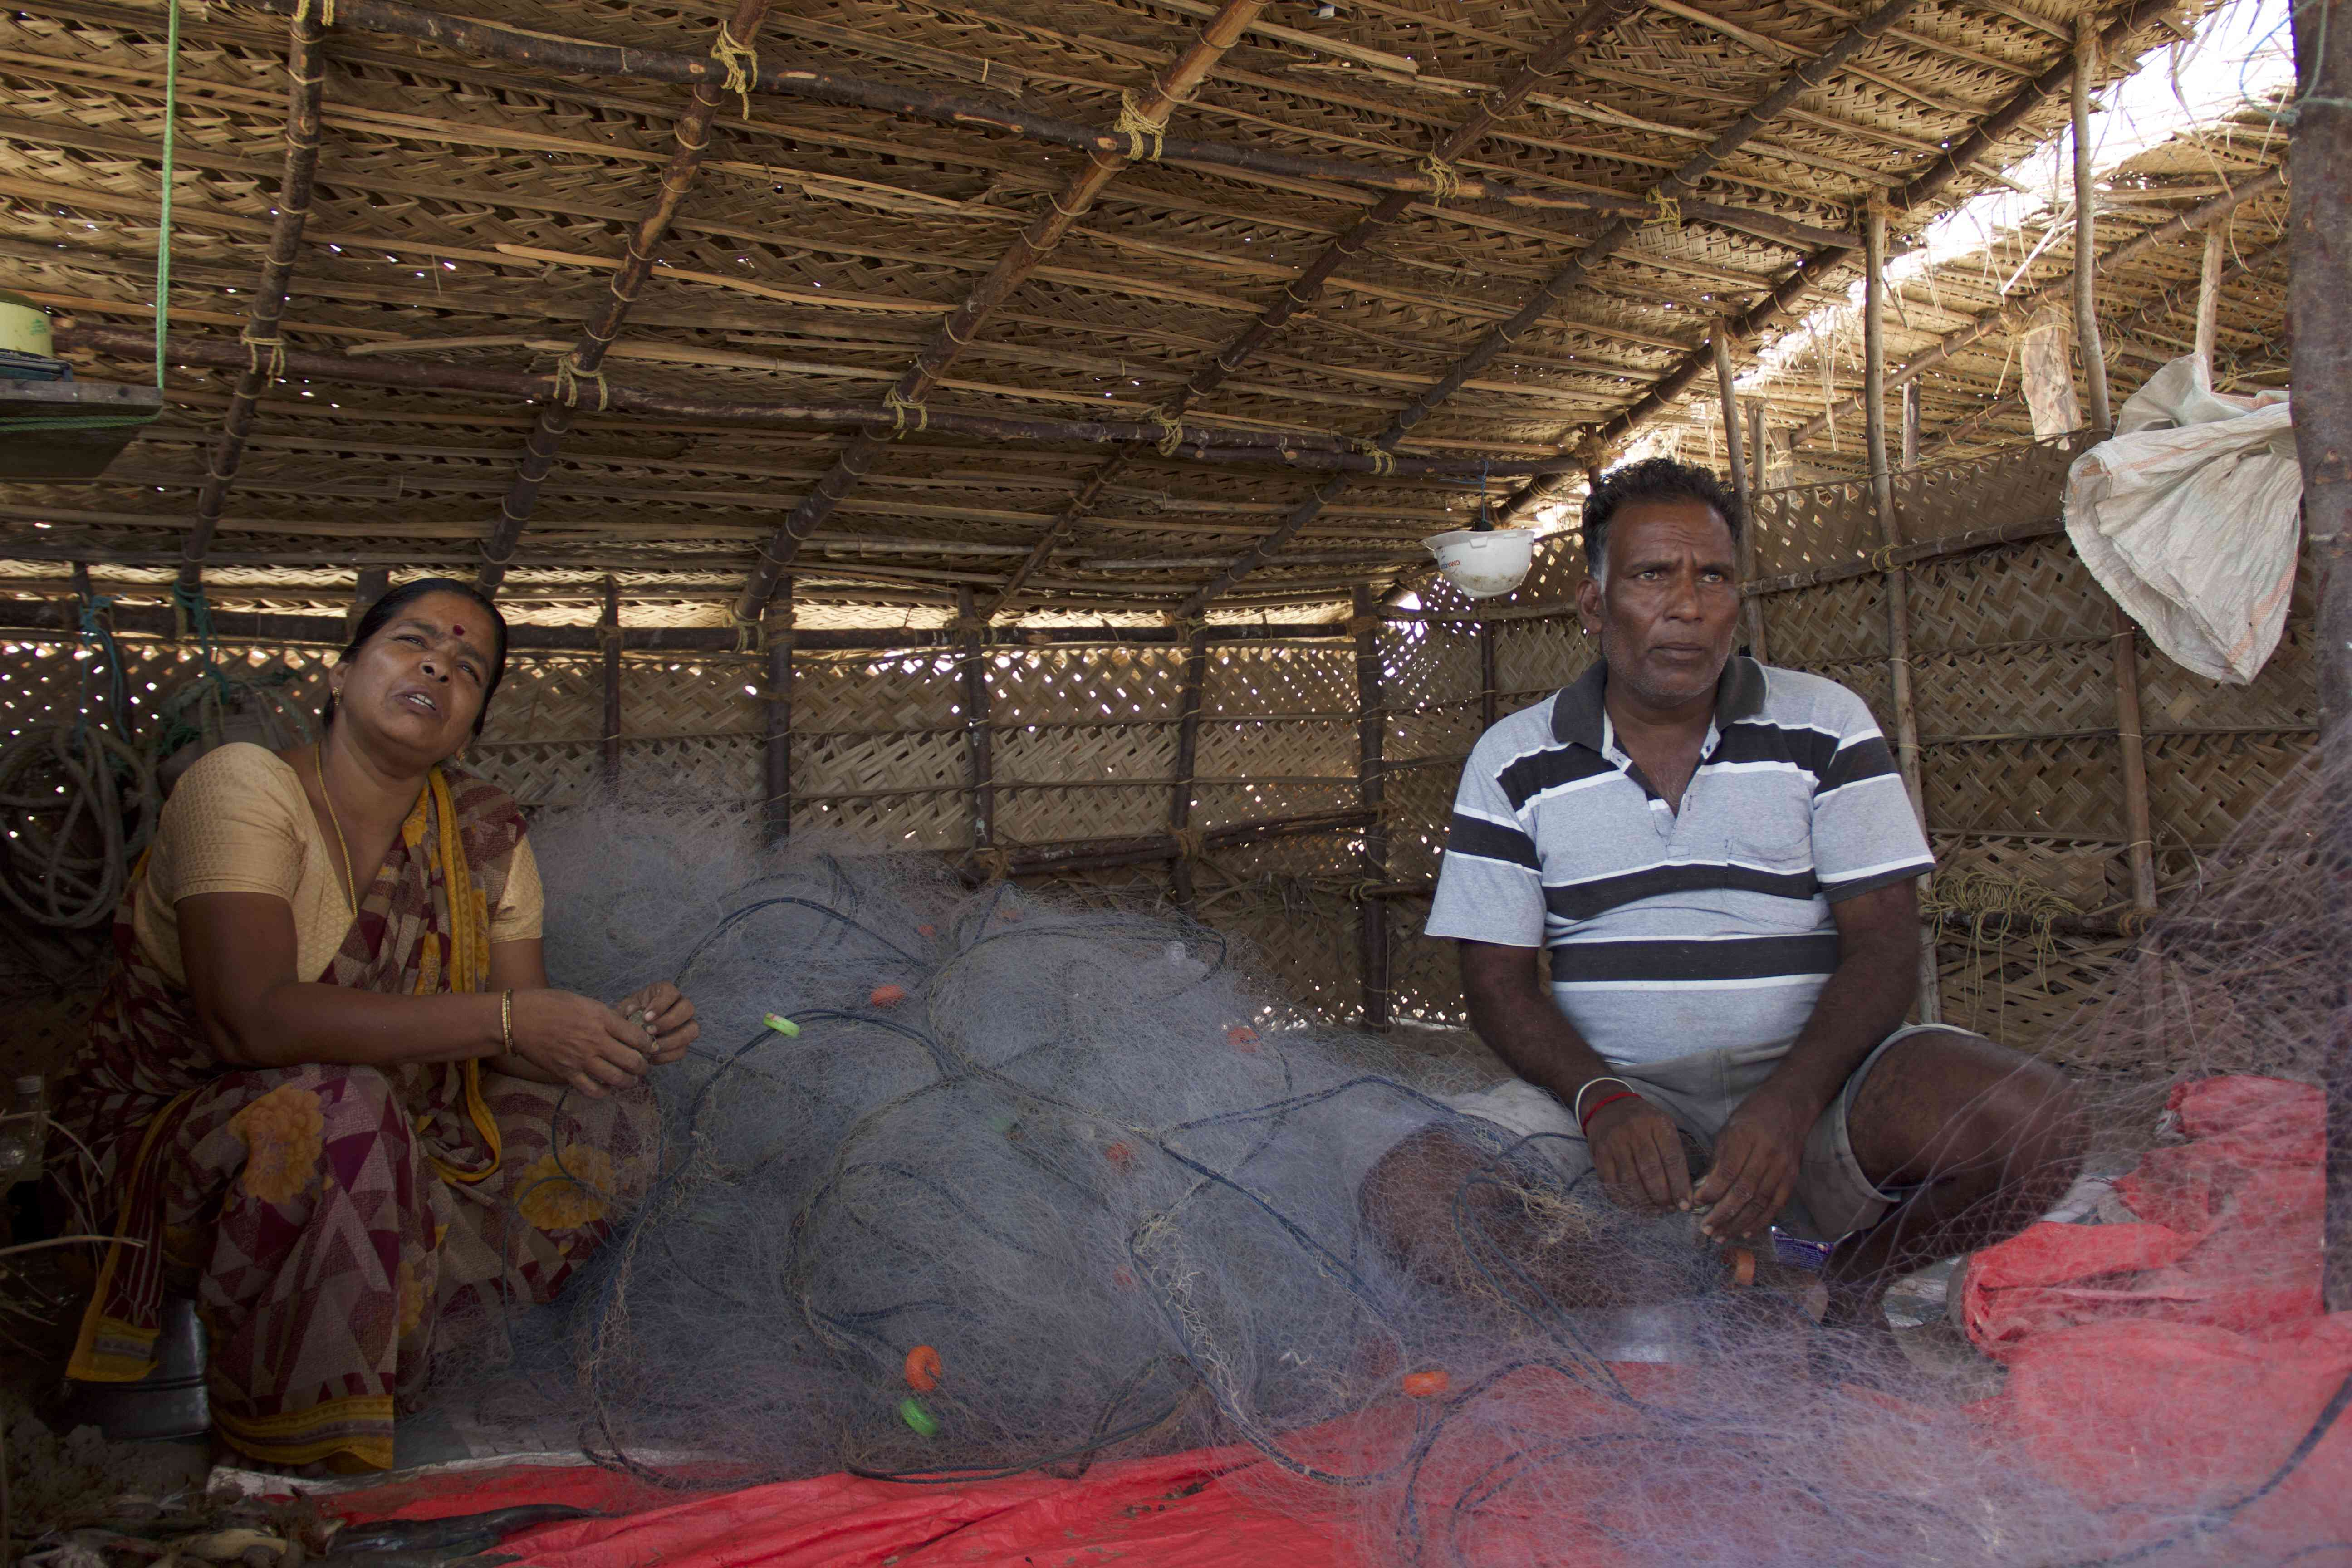 R Thennarasu and his wife, T Rani, squatted on the beach pick out fish and shrimps caught in the fishing net at Arucottuthurai fishing village in Nagapattinam district in Tamil Nadu. Photo credit: M Palanikumar/Pepcollective